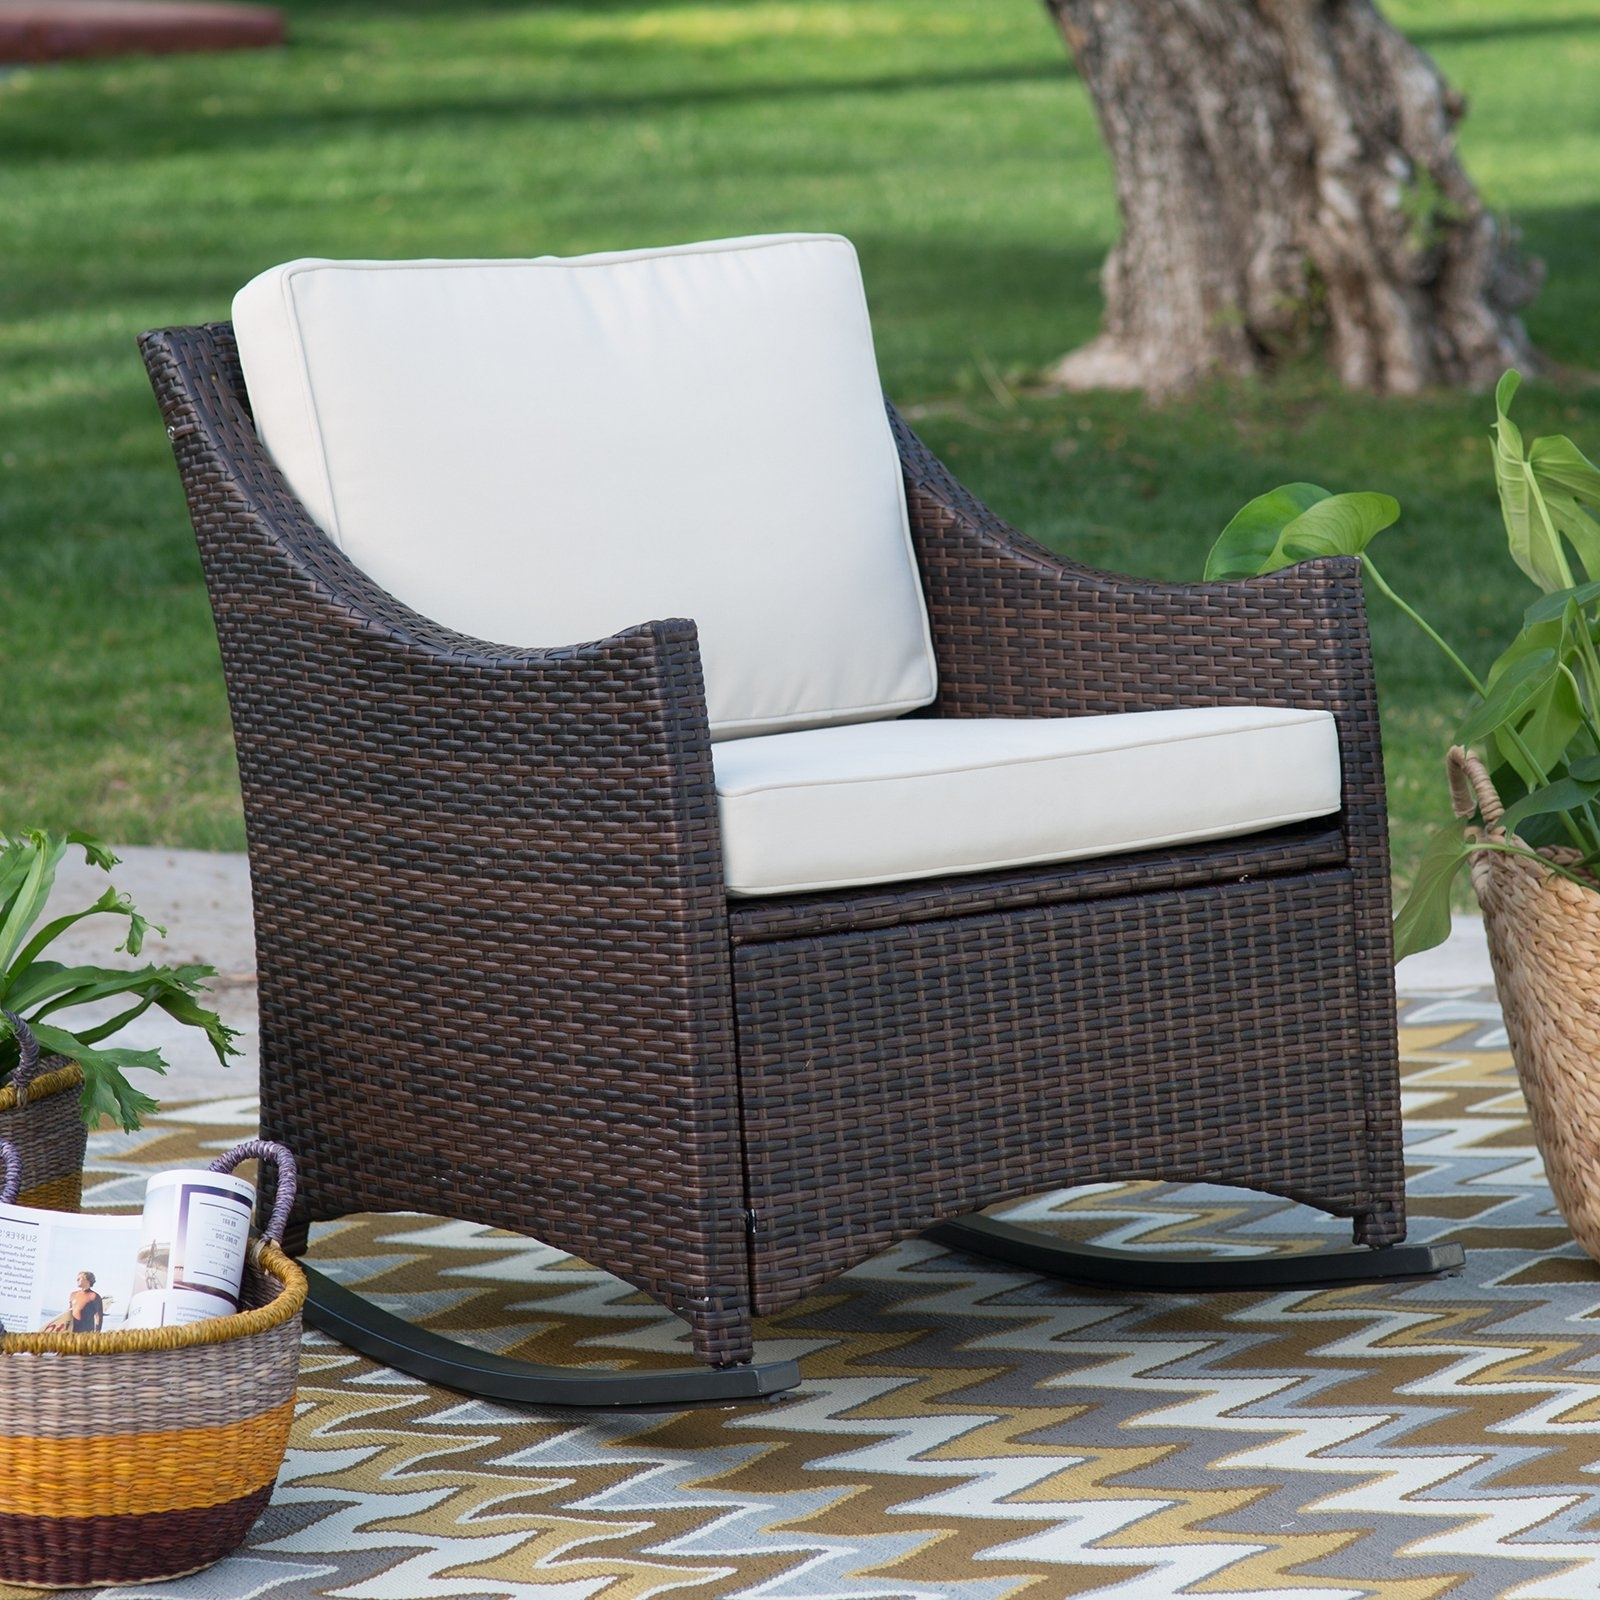 Current Coral Coast Casco Bay Resin Wicker Rocking Chair Hayneedle Outdoor With Resin Wicker Rocking Chairs (View 5 of 15)